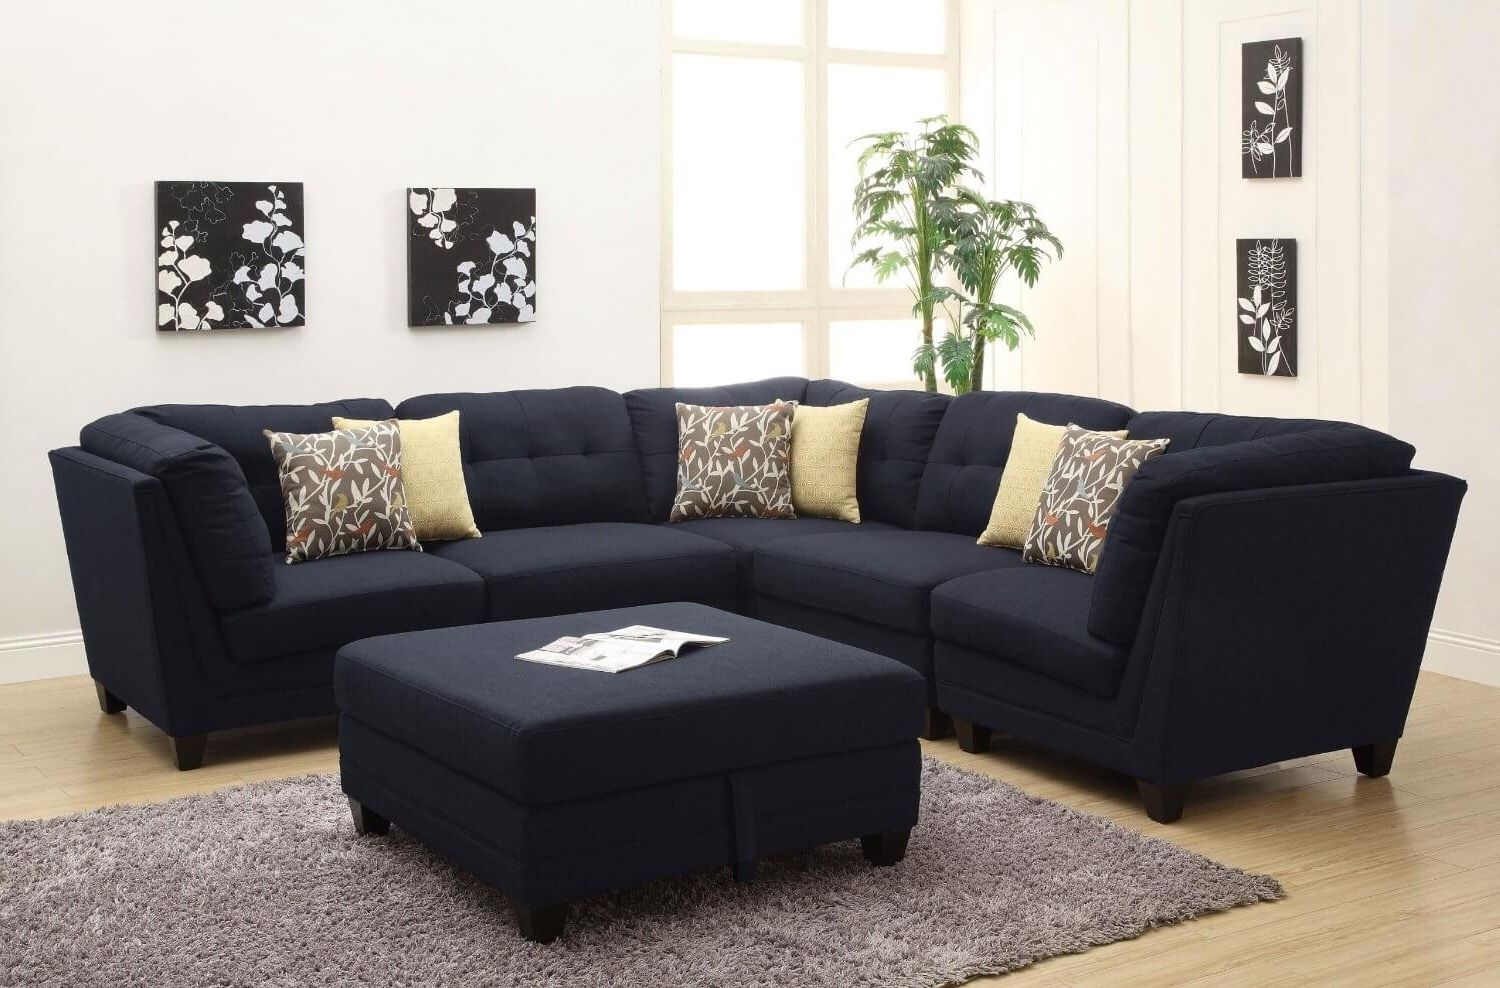 Most Recent 100 Awesome Sectional Sofas Under $1,000 (2018) With Sectional Sofas Under (View 3 of 15)